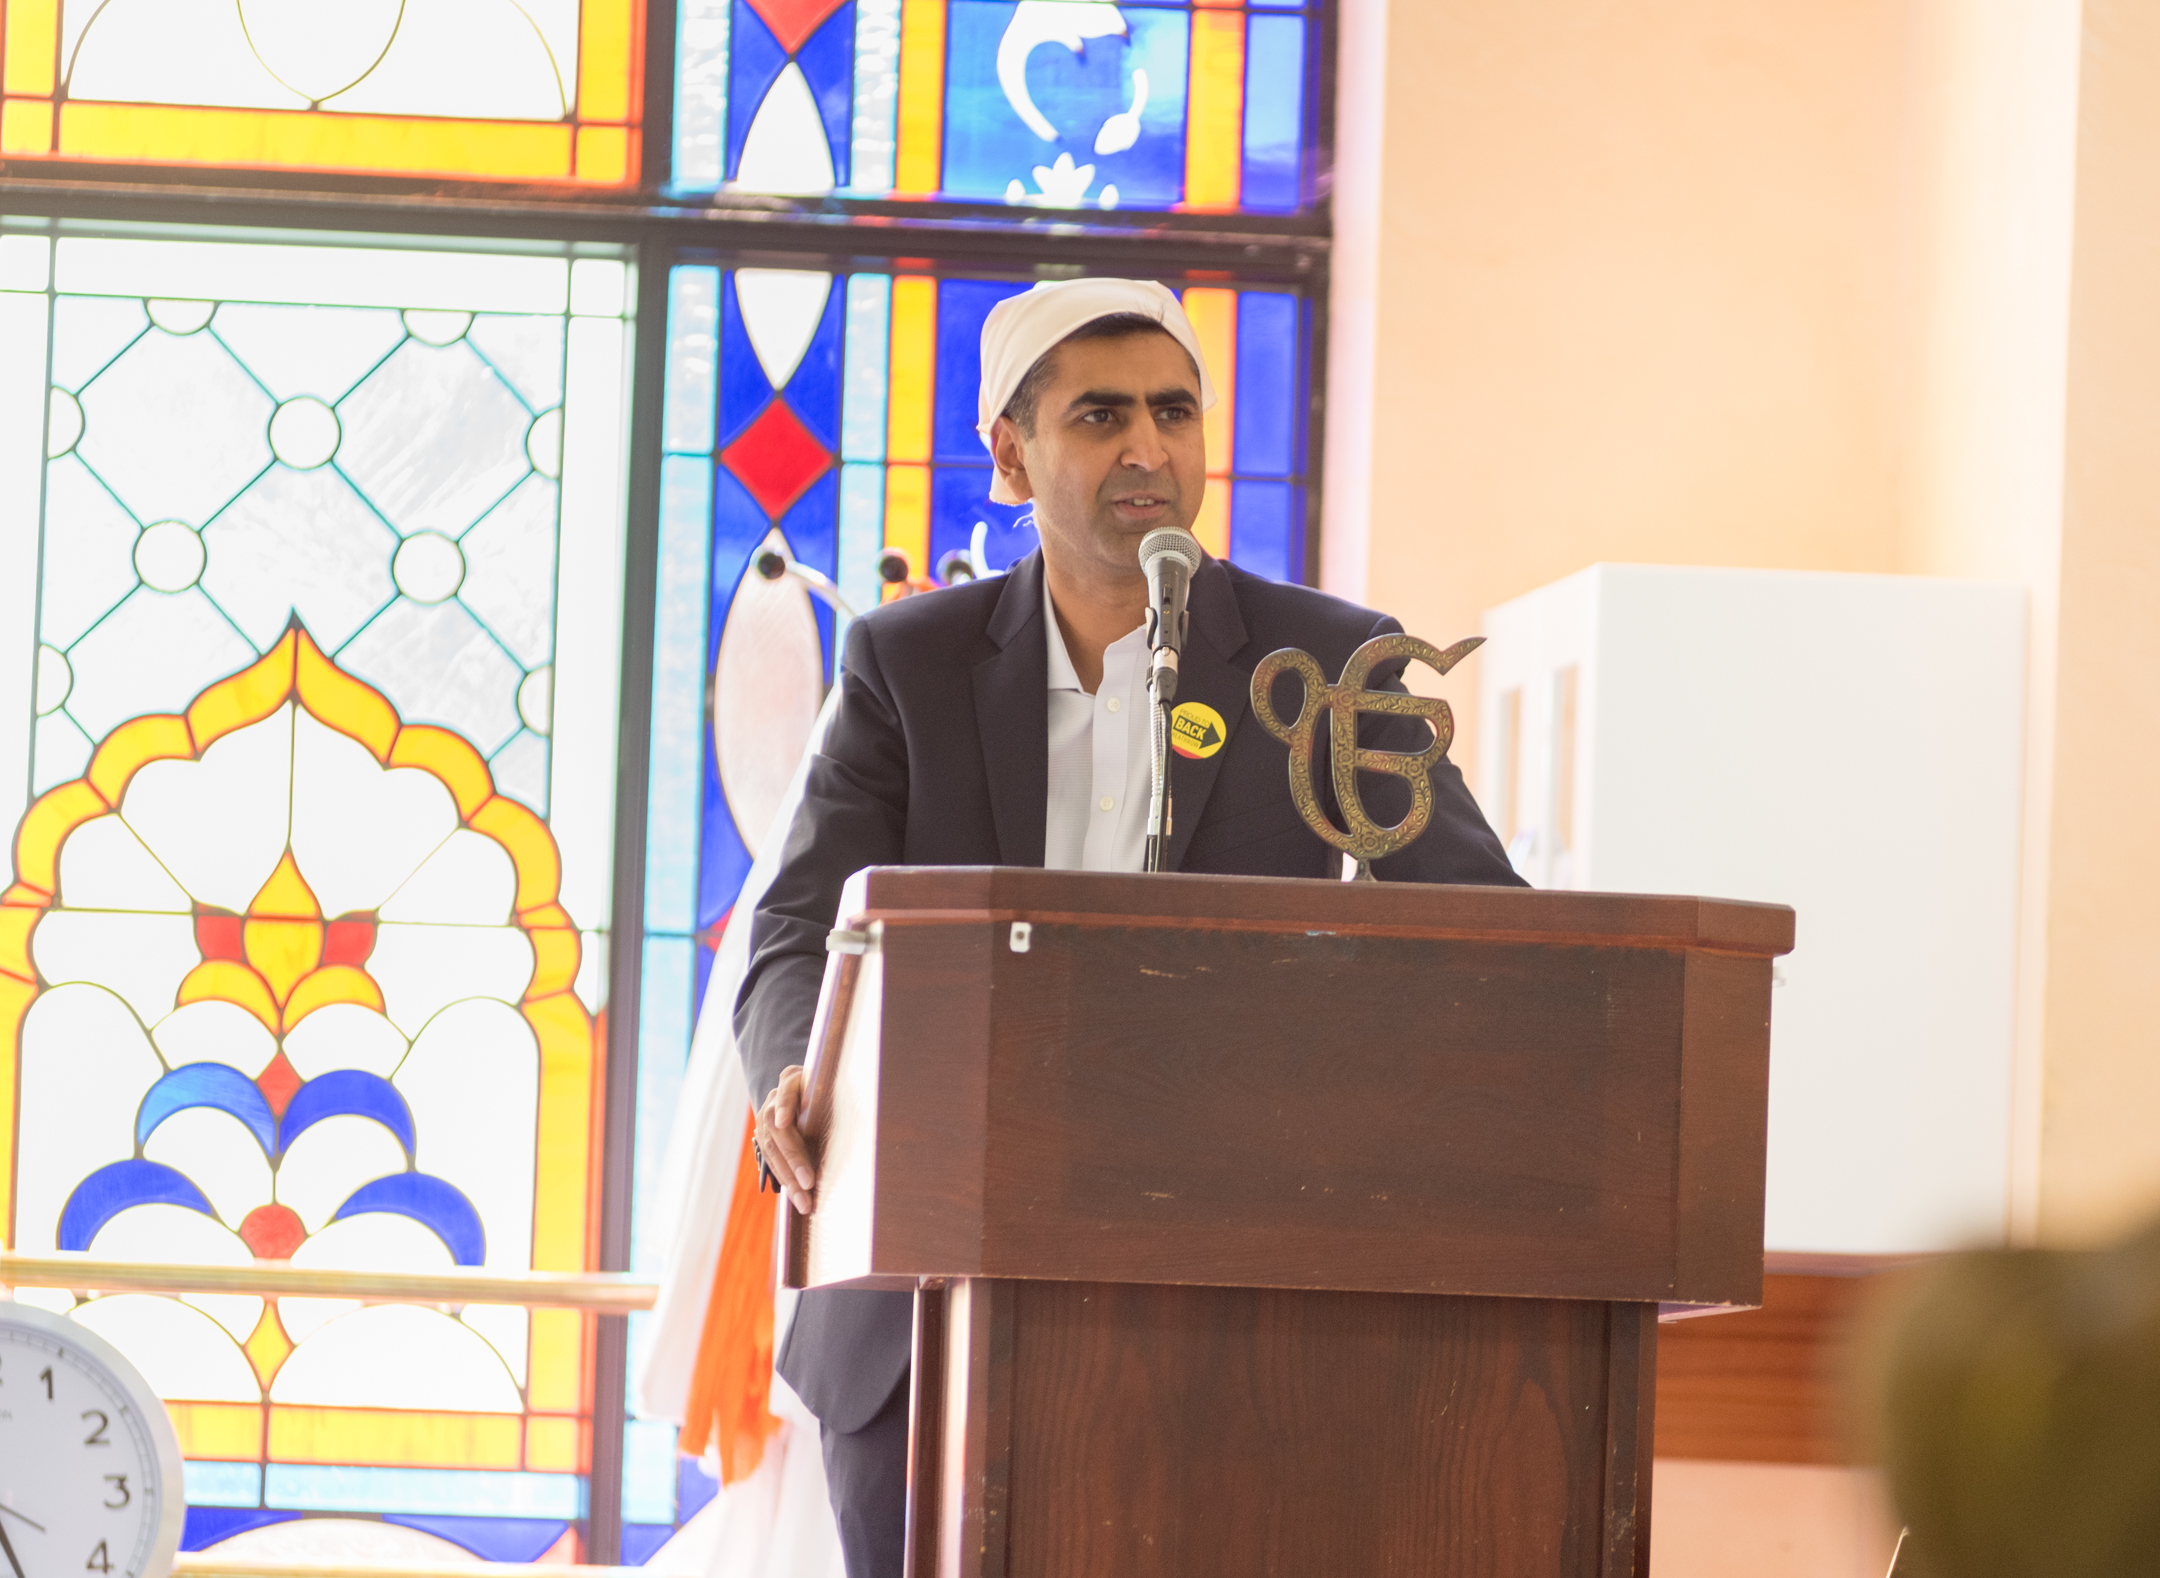 Parmjit speaking at the Gurdwara